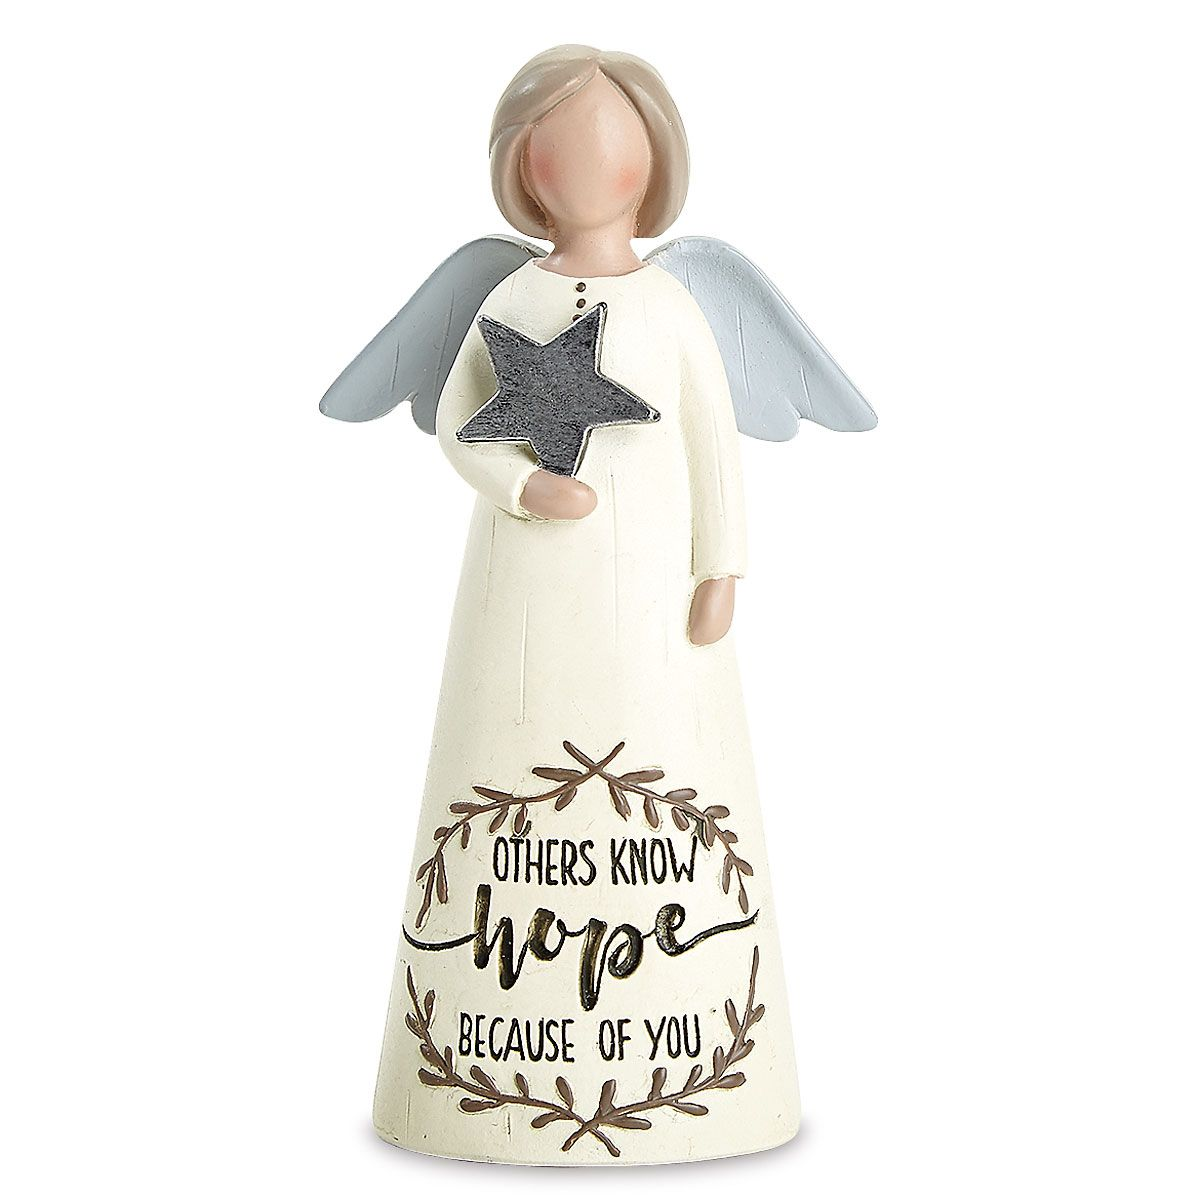 Angel Star Hope Figurine